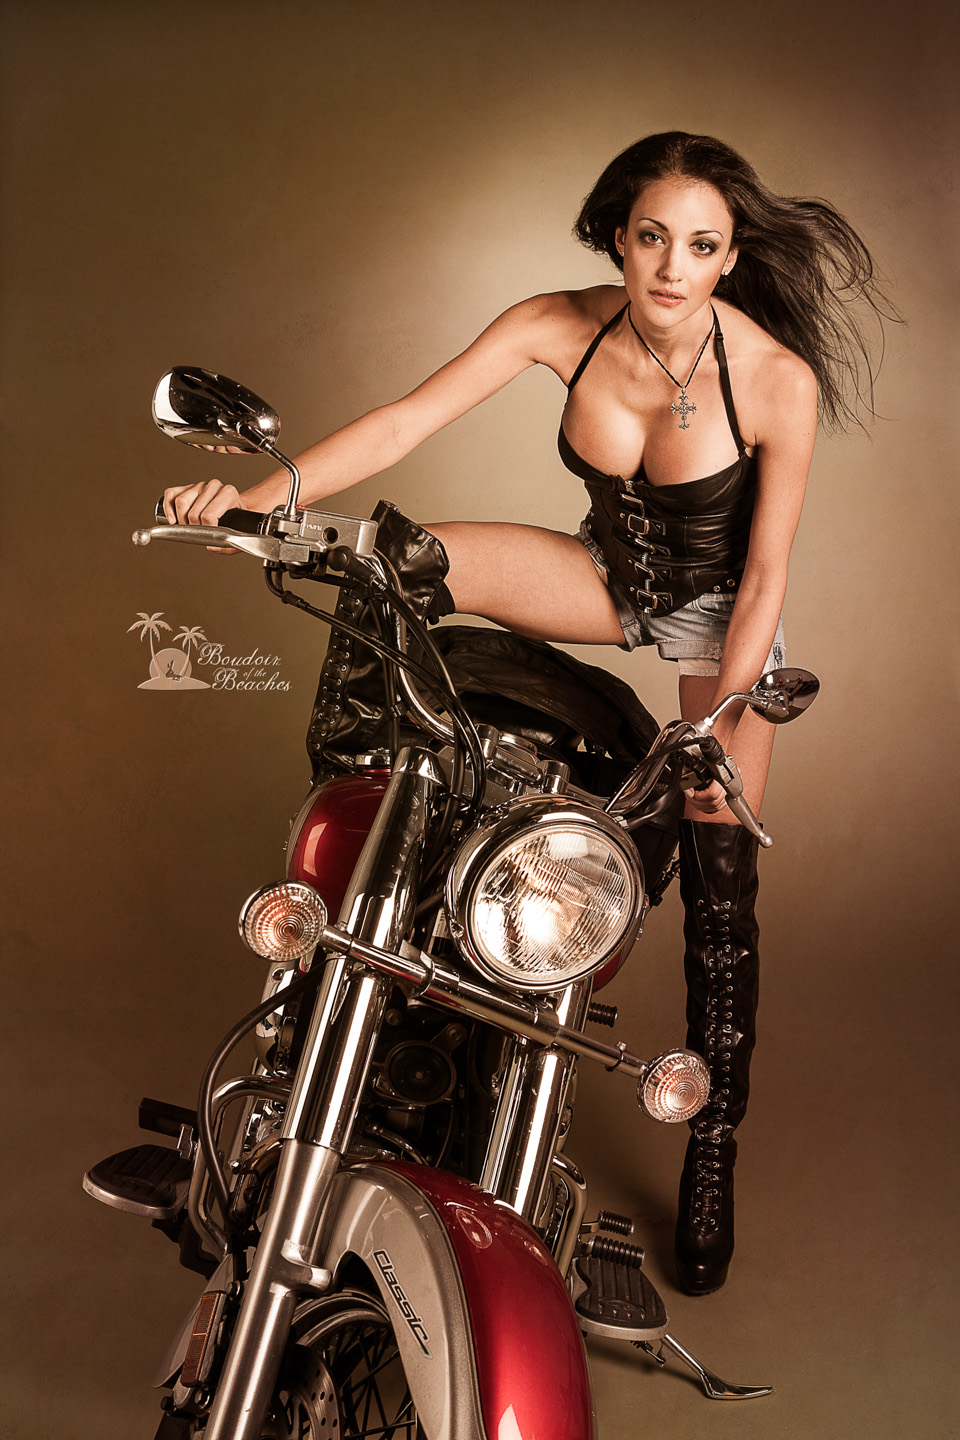 Biker Babe Boudoir photography Collection - Boudoir of the Beaches